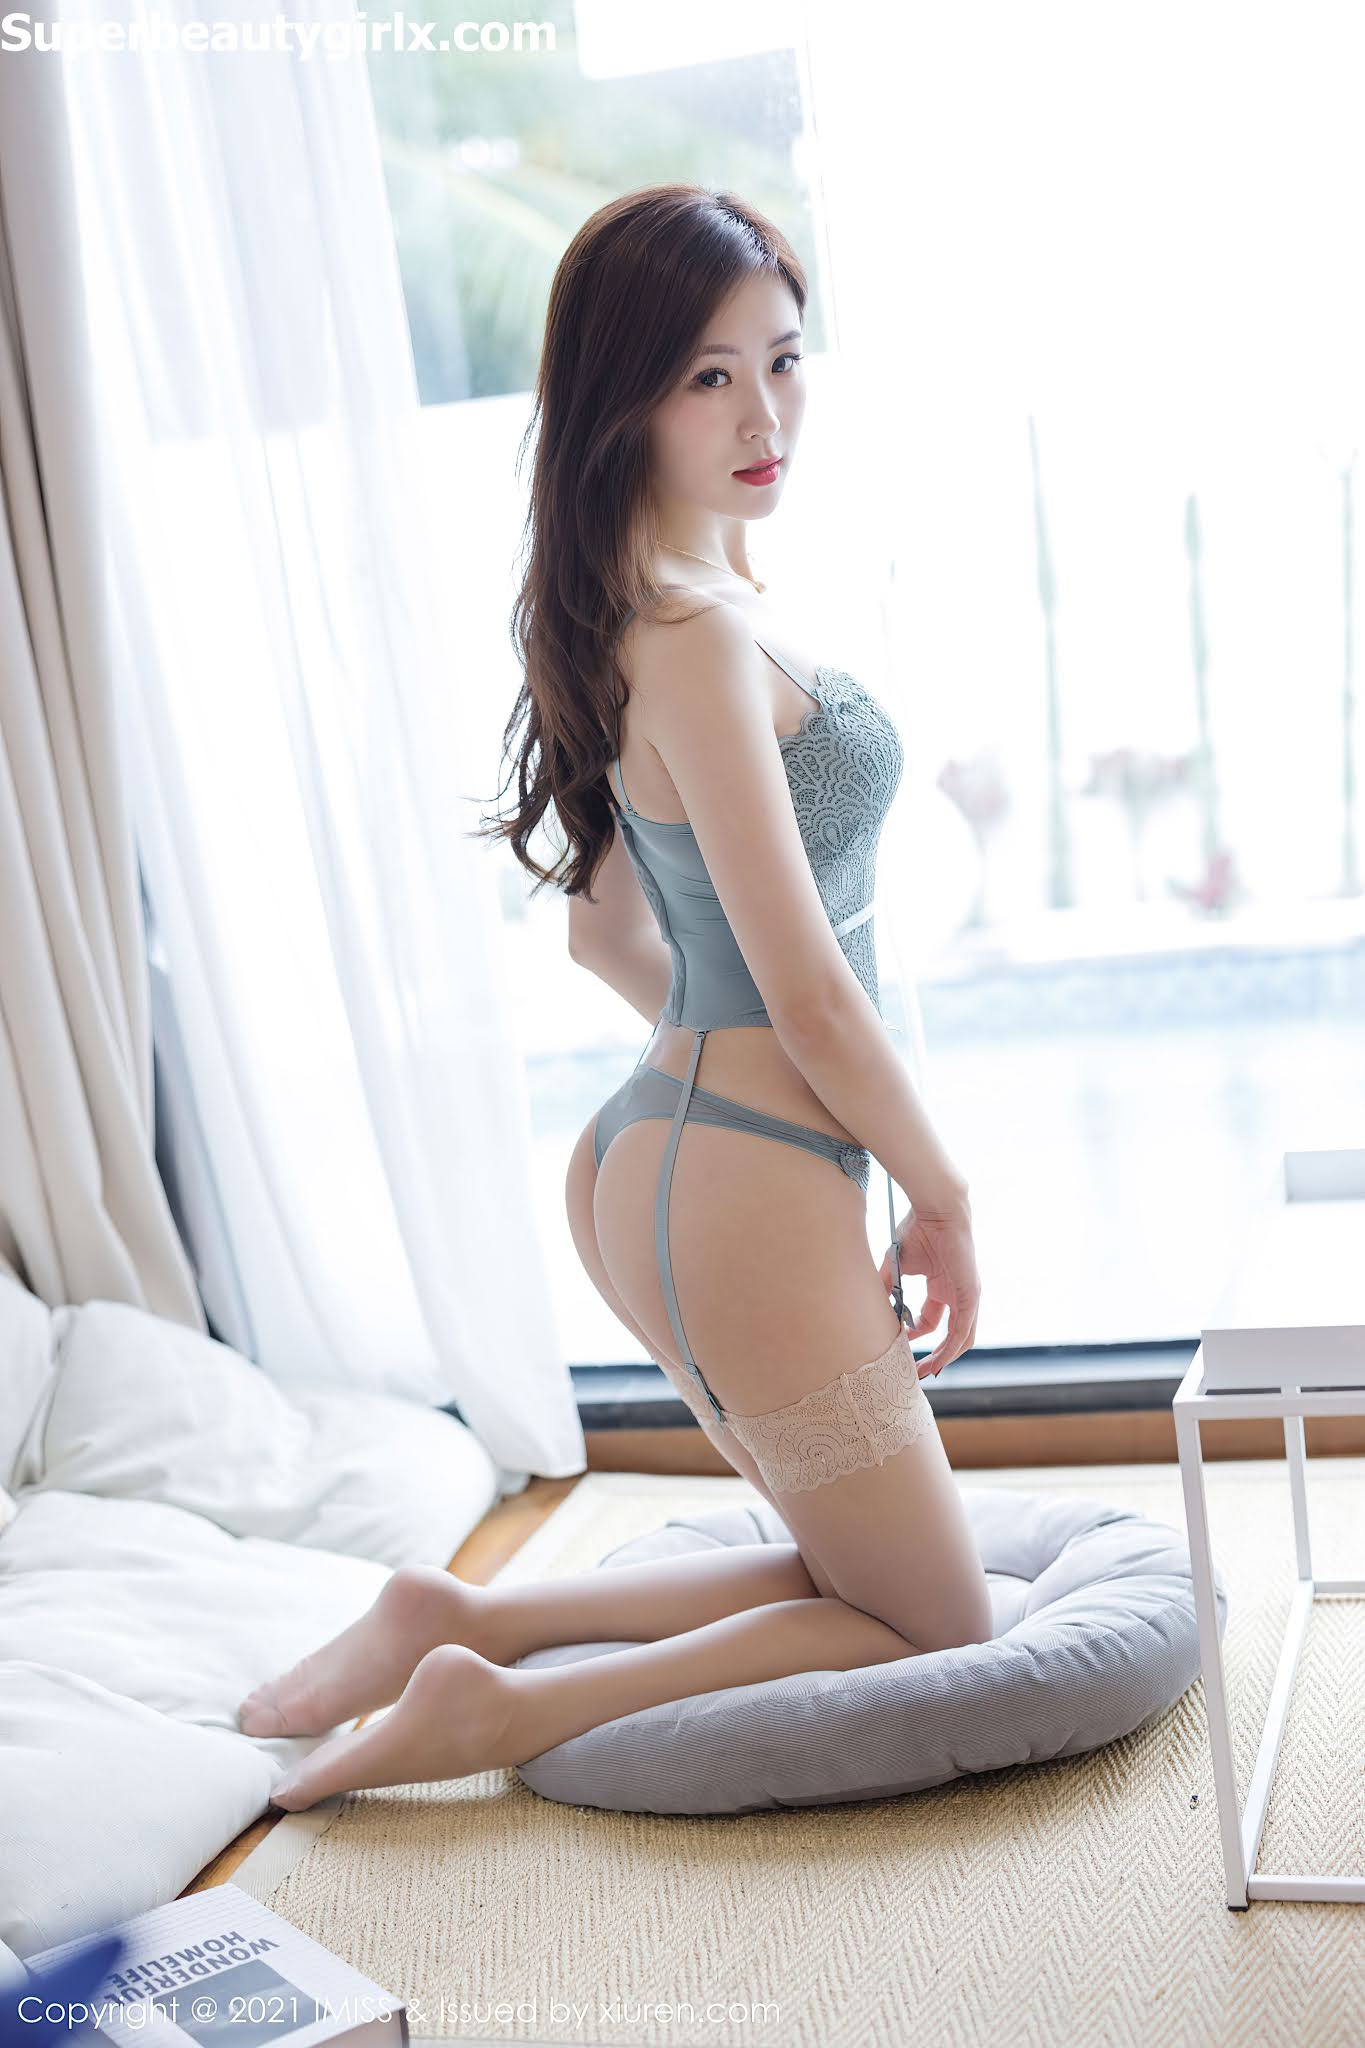 IMISS-Vol.551-Cynthia-Superbeautygirlx.com